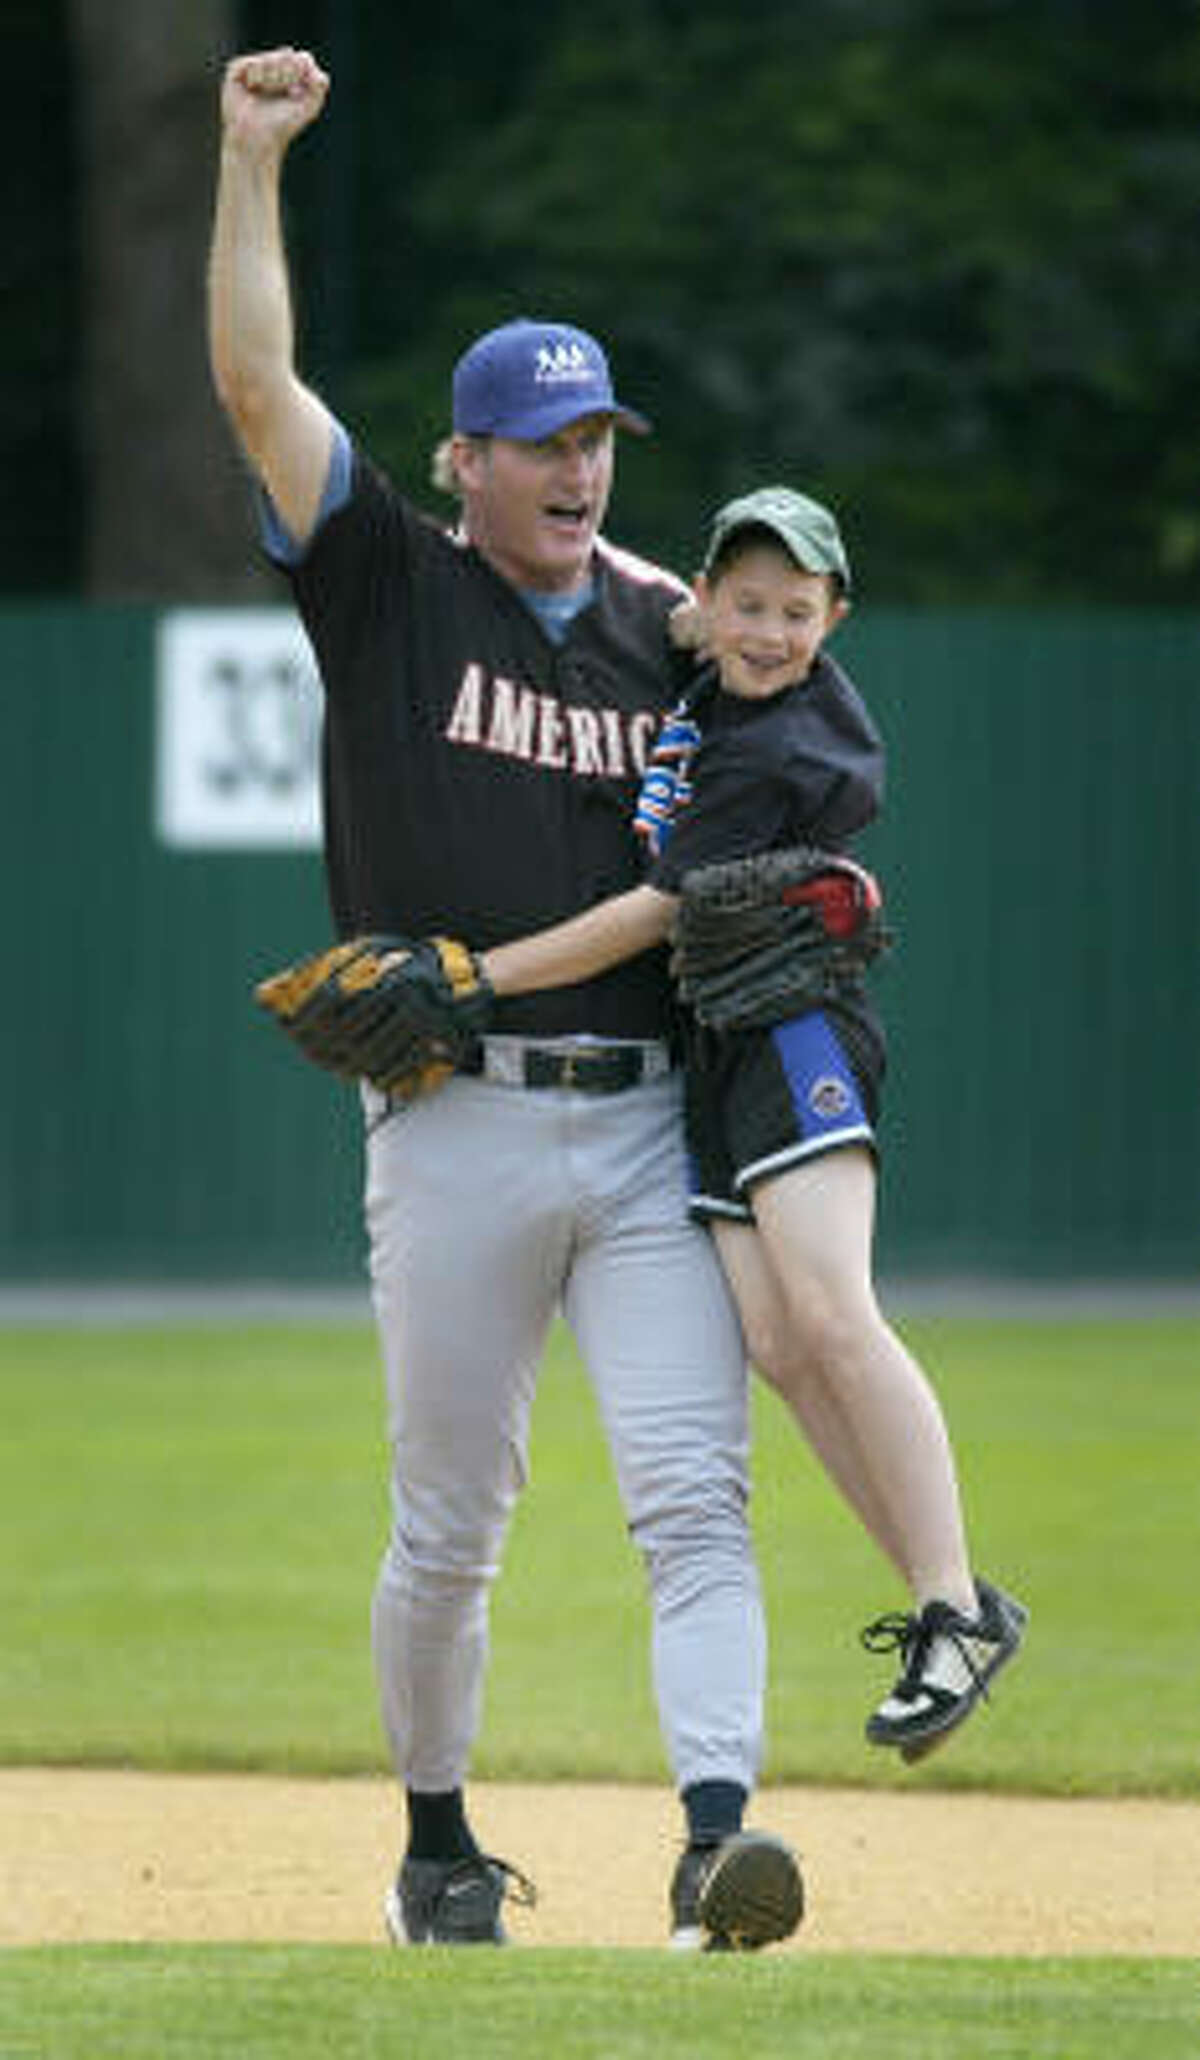 Former major league player Steve Lyons picks up 11-year-old Zachary D'Errico after D'Errico made a double play during the Baseball Hall of Fame Classic.